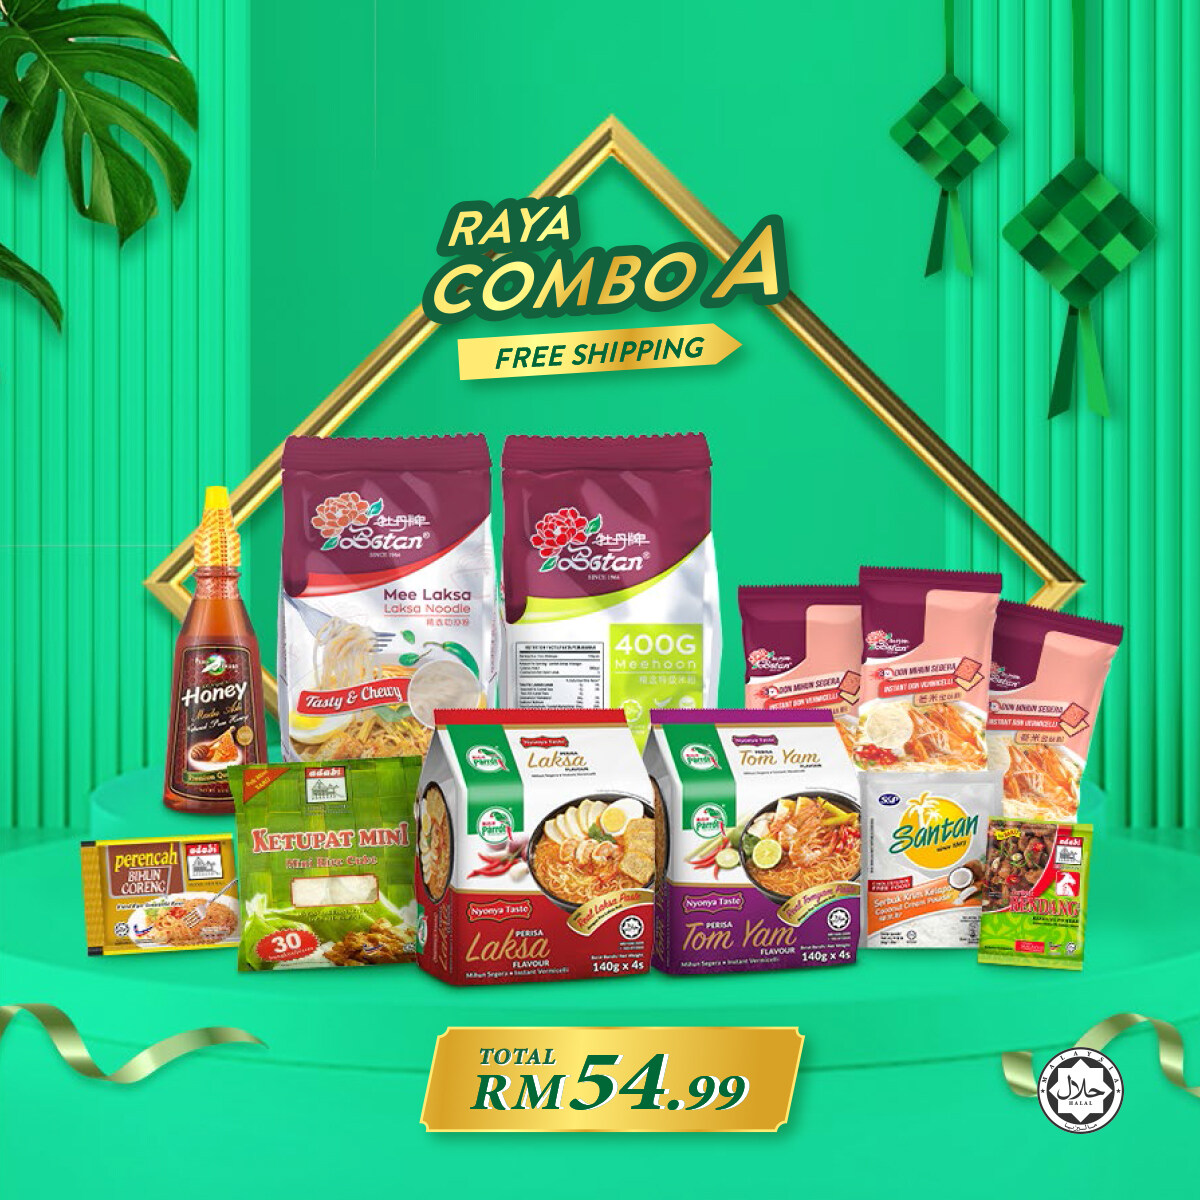 [Shipping Subsidized] Raya Combo A, Set Bihun Special Pack